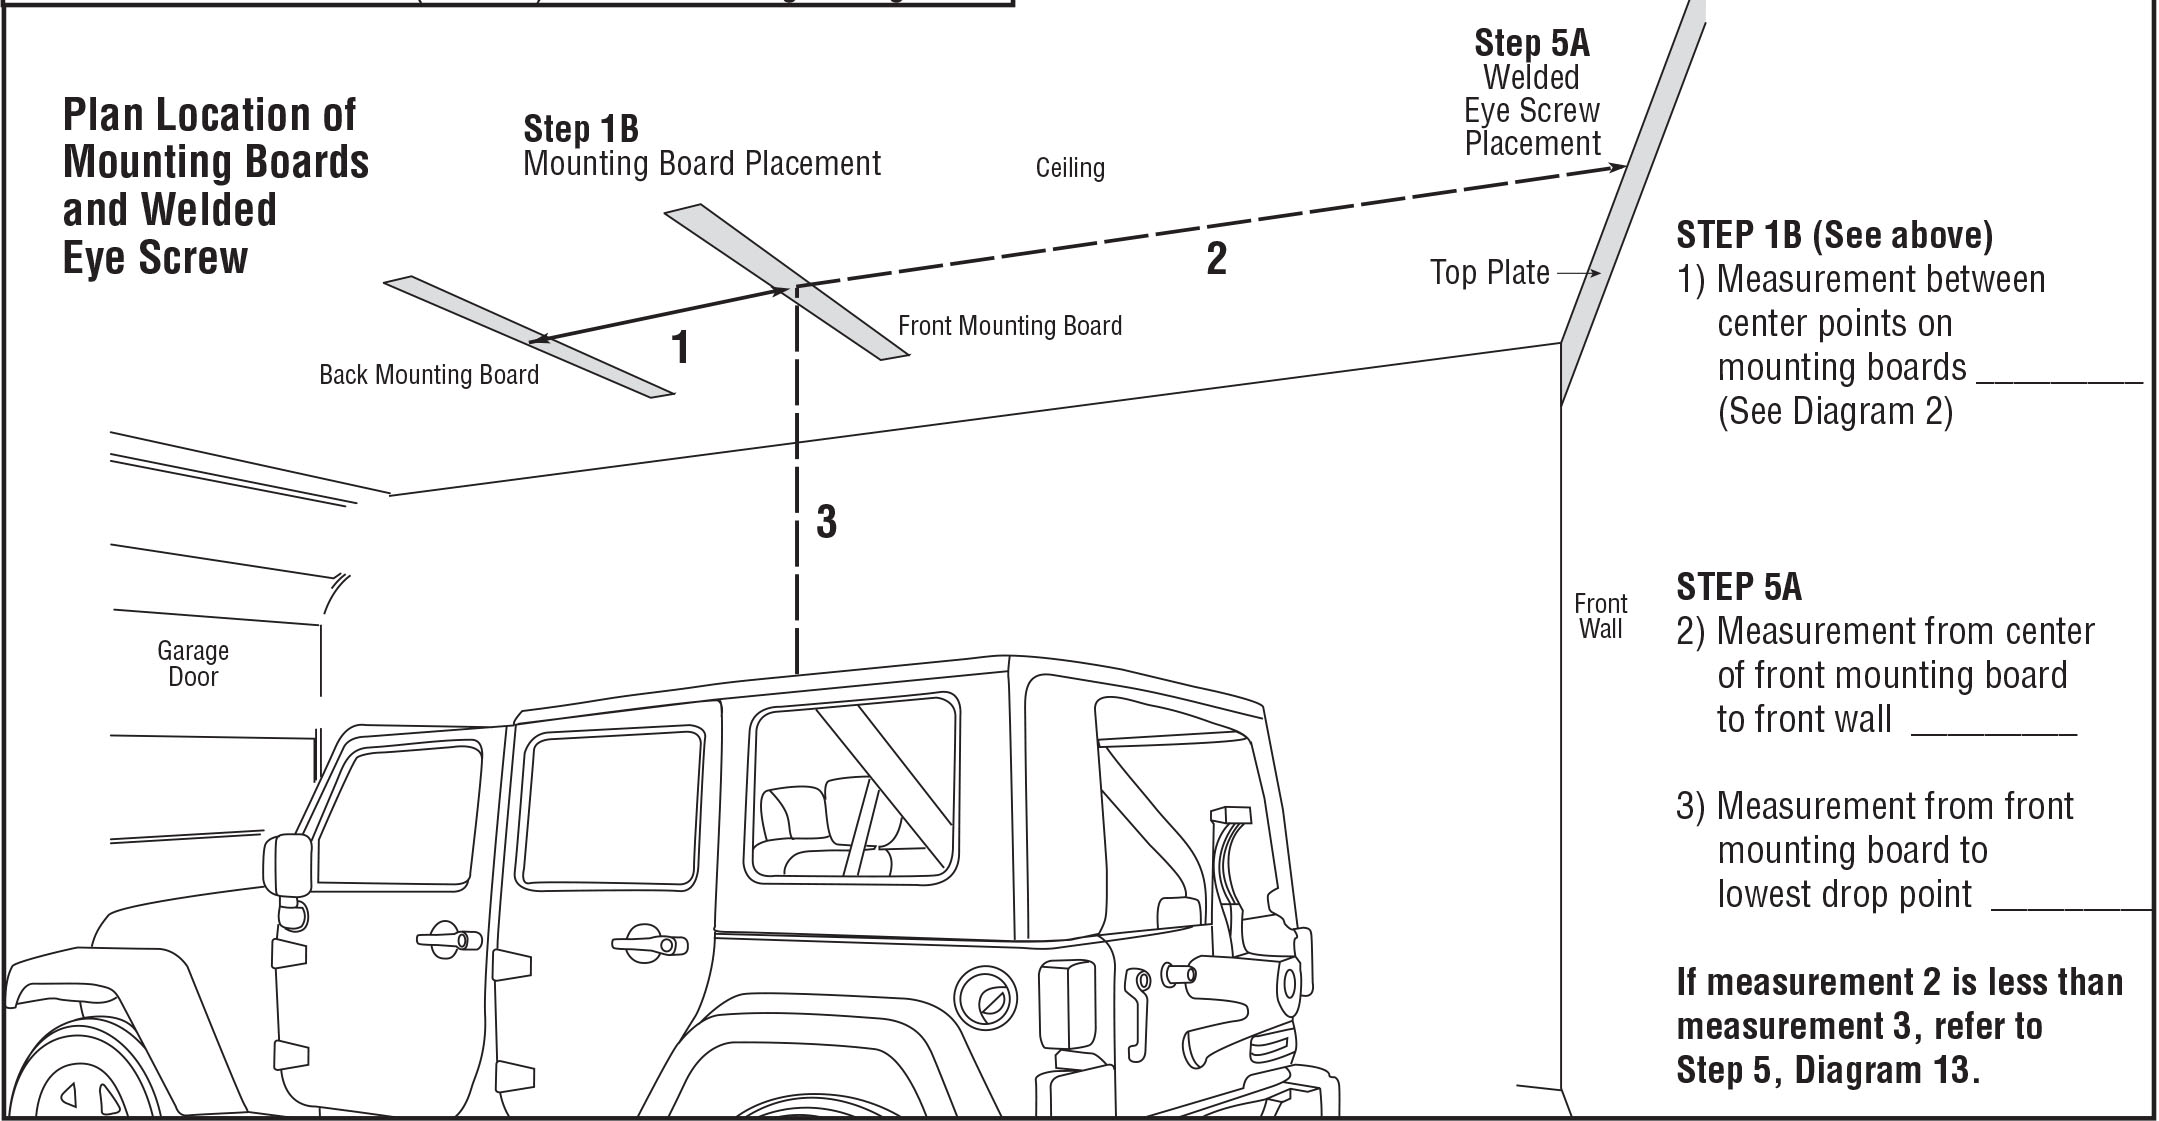 How To Install A Harken Hoister Garage Storage 4 Point Lift System Jeep Wrangler Front Sway Bar Diagram Free Image About Wiring 3 Distance Of Mounting Boards From Wall Is Important As It Affects The Position Welded Screw Eye In Step 5a